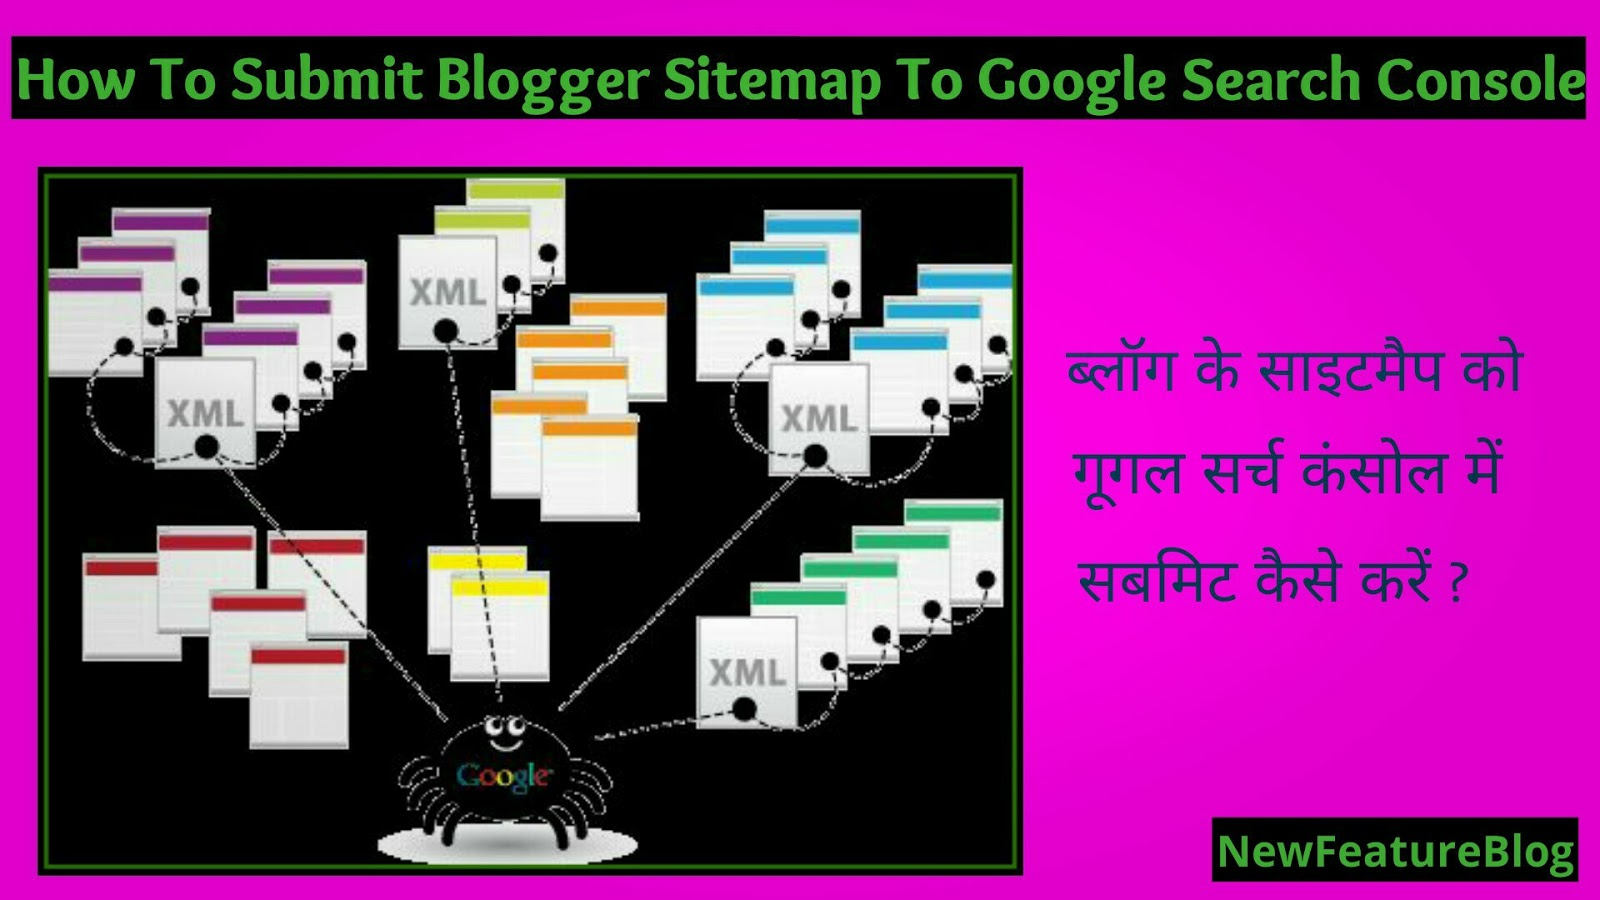 blog ke sitemap ko google search console me submit kaise kare new